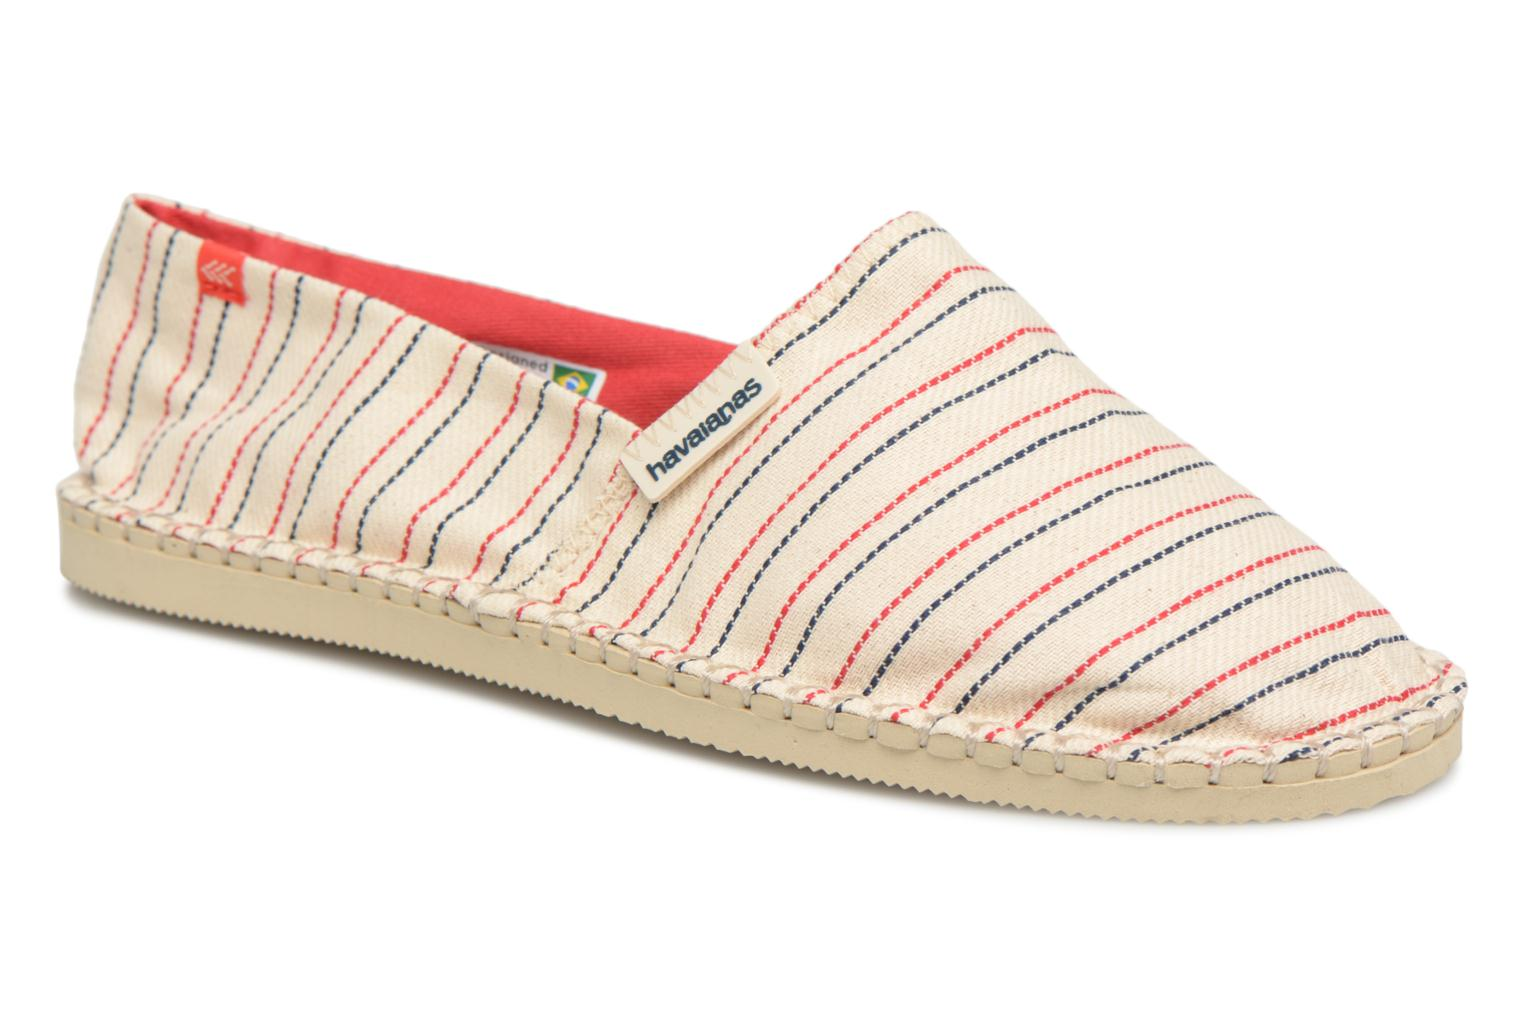 Marques Chaussure homme Havaianas homme Origine Print Classic III White/red